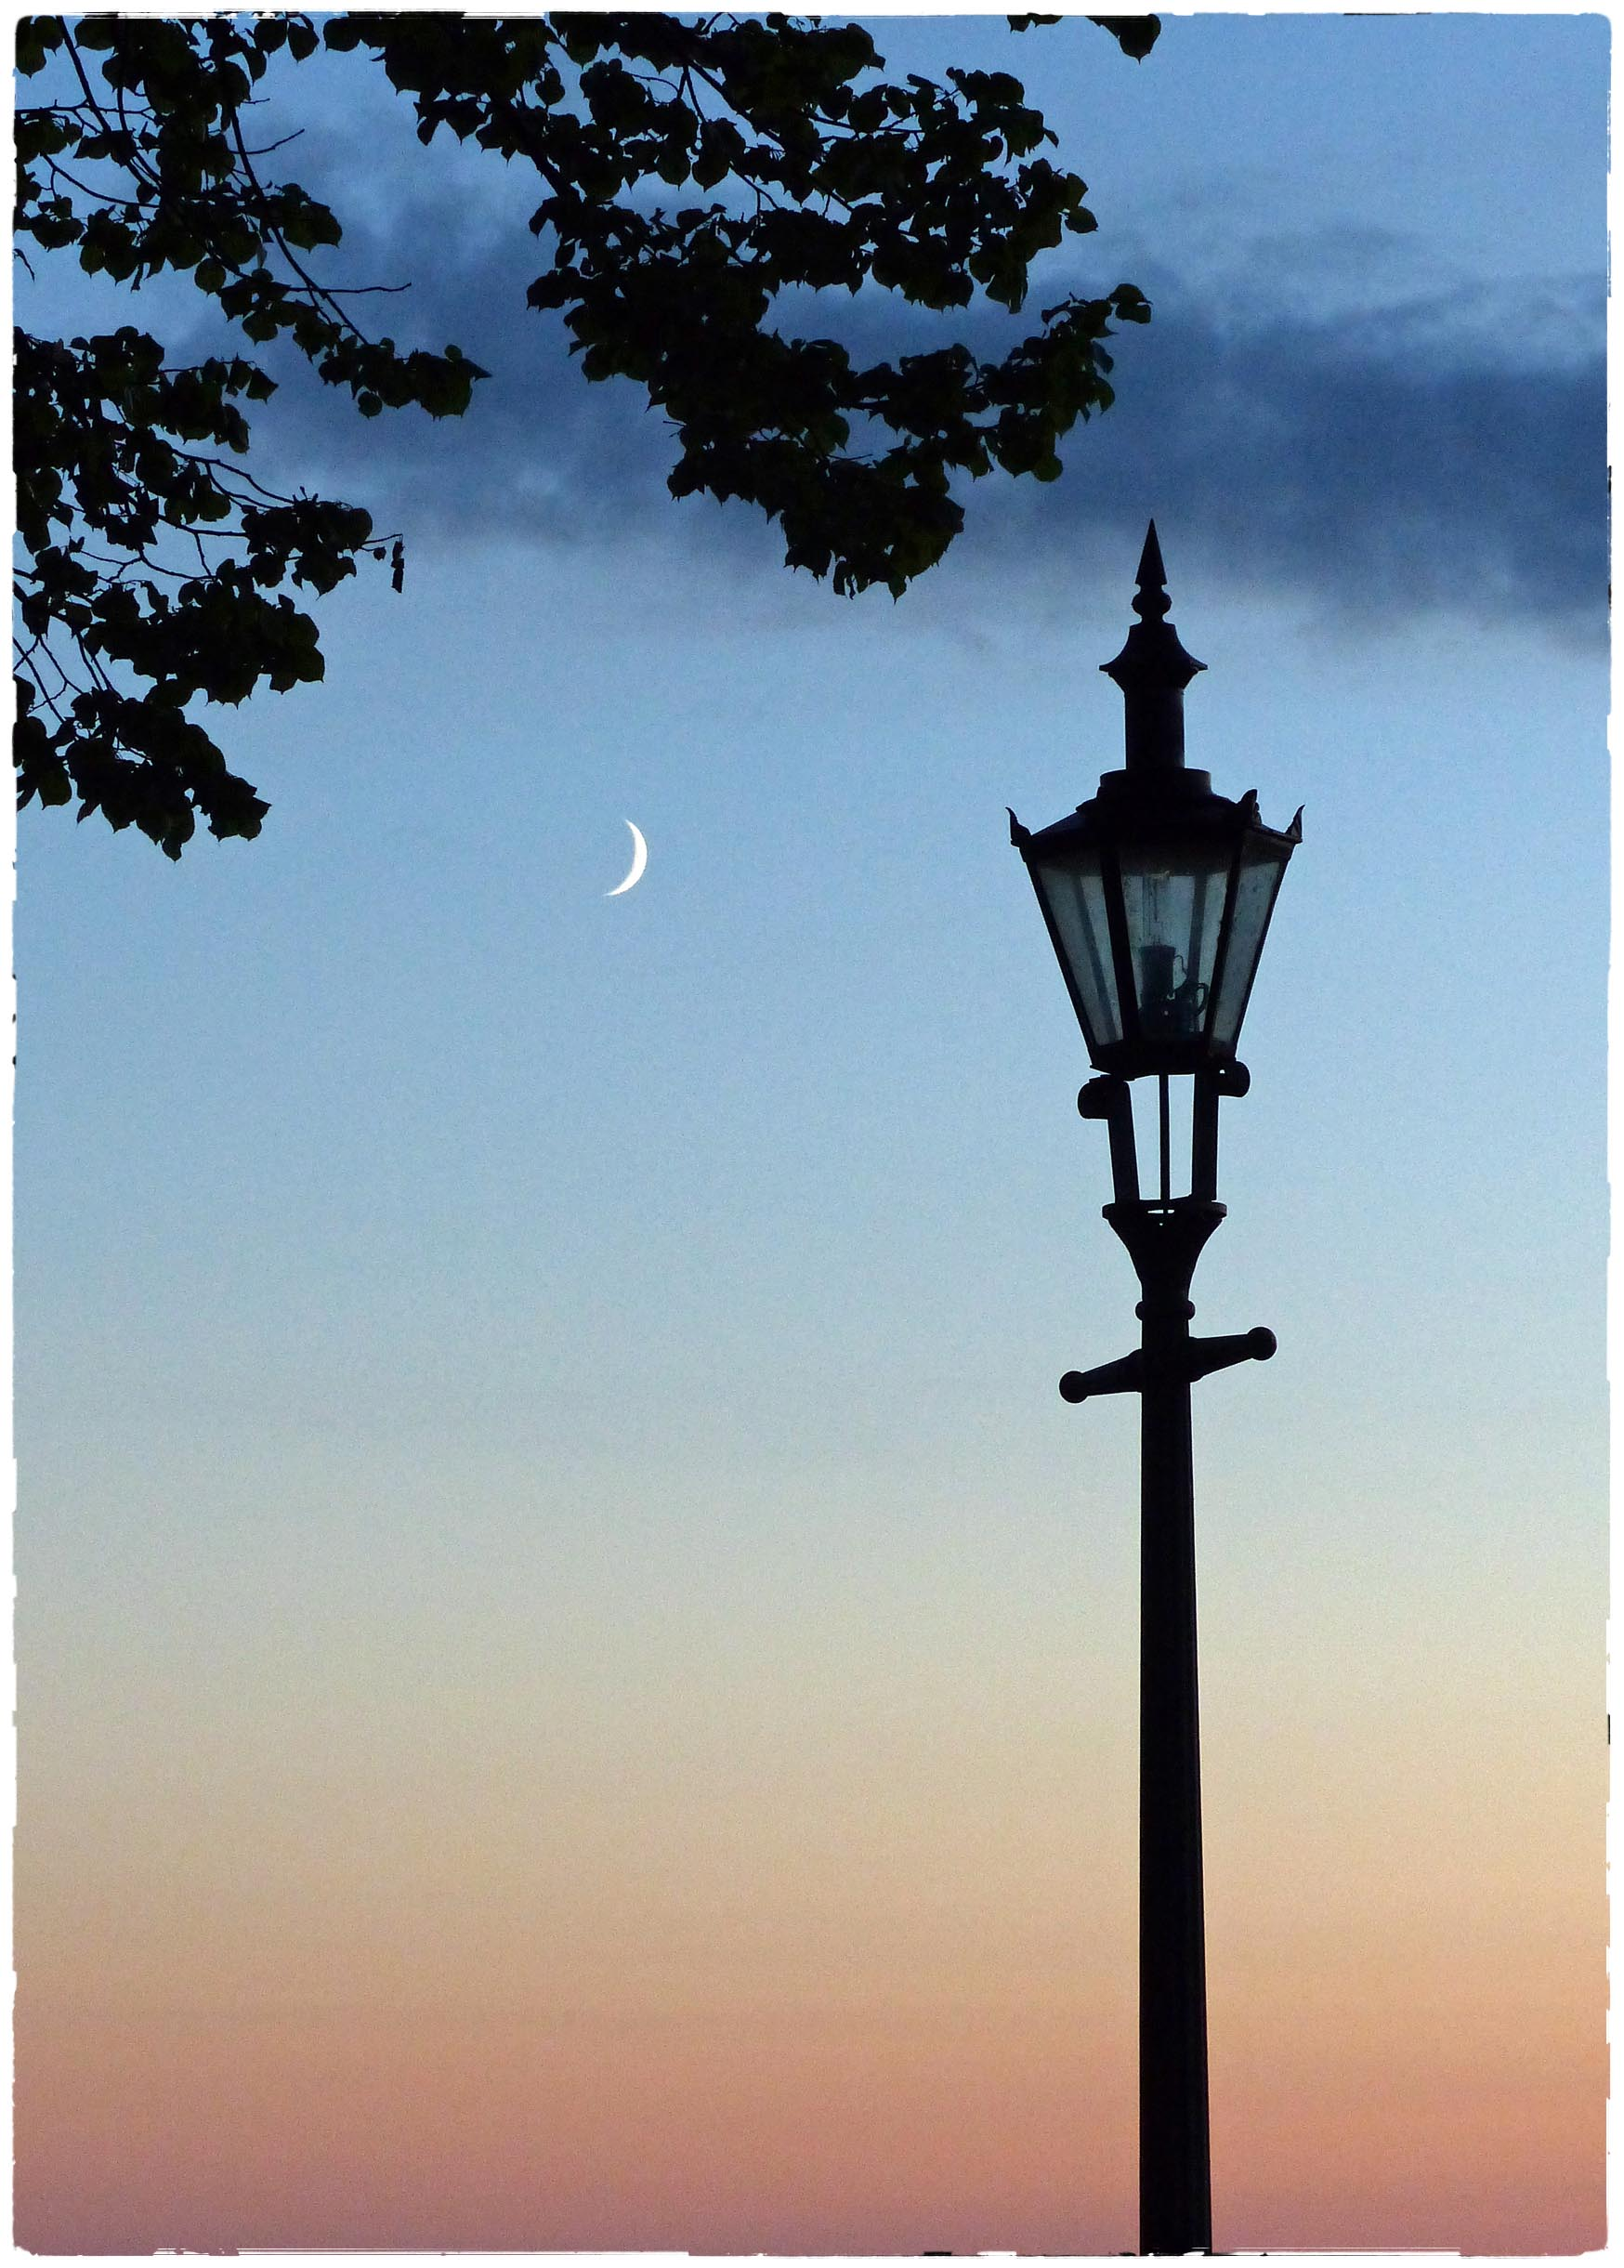 Sunset with lamppost and crescent moon